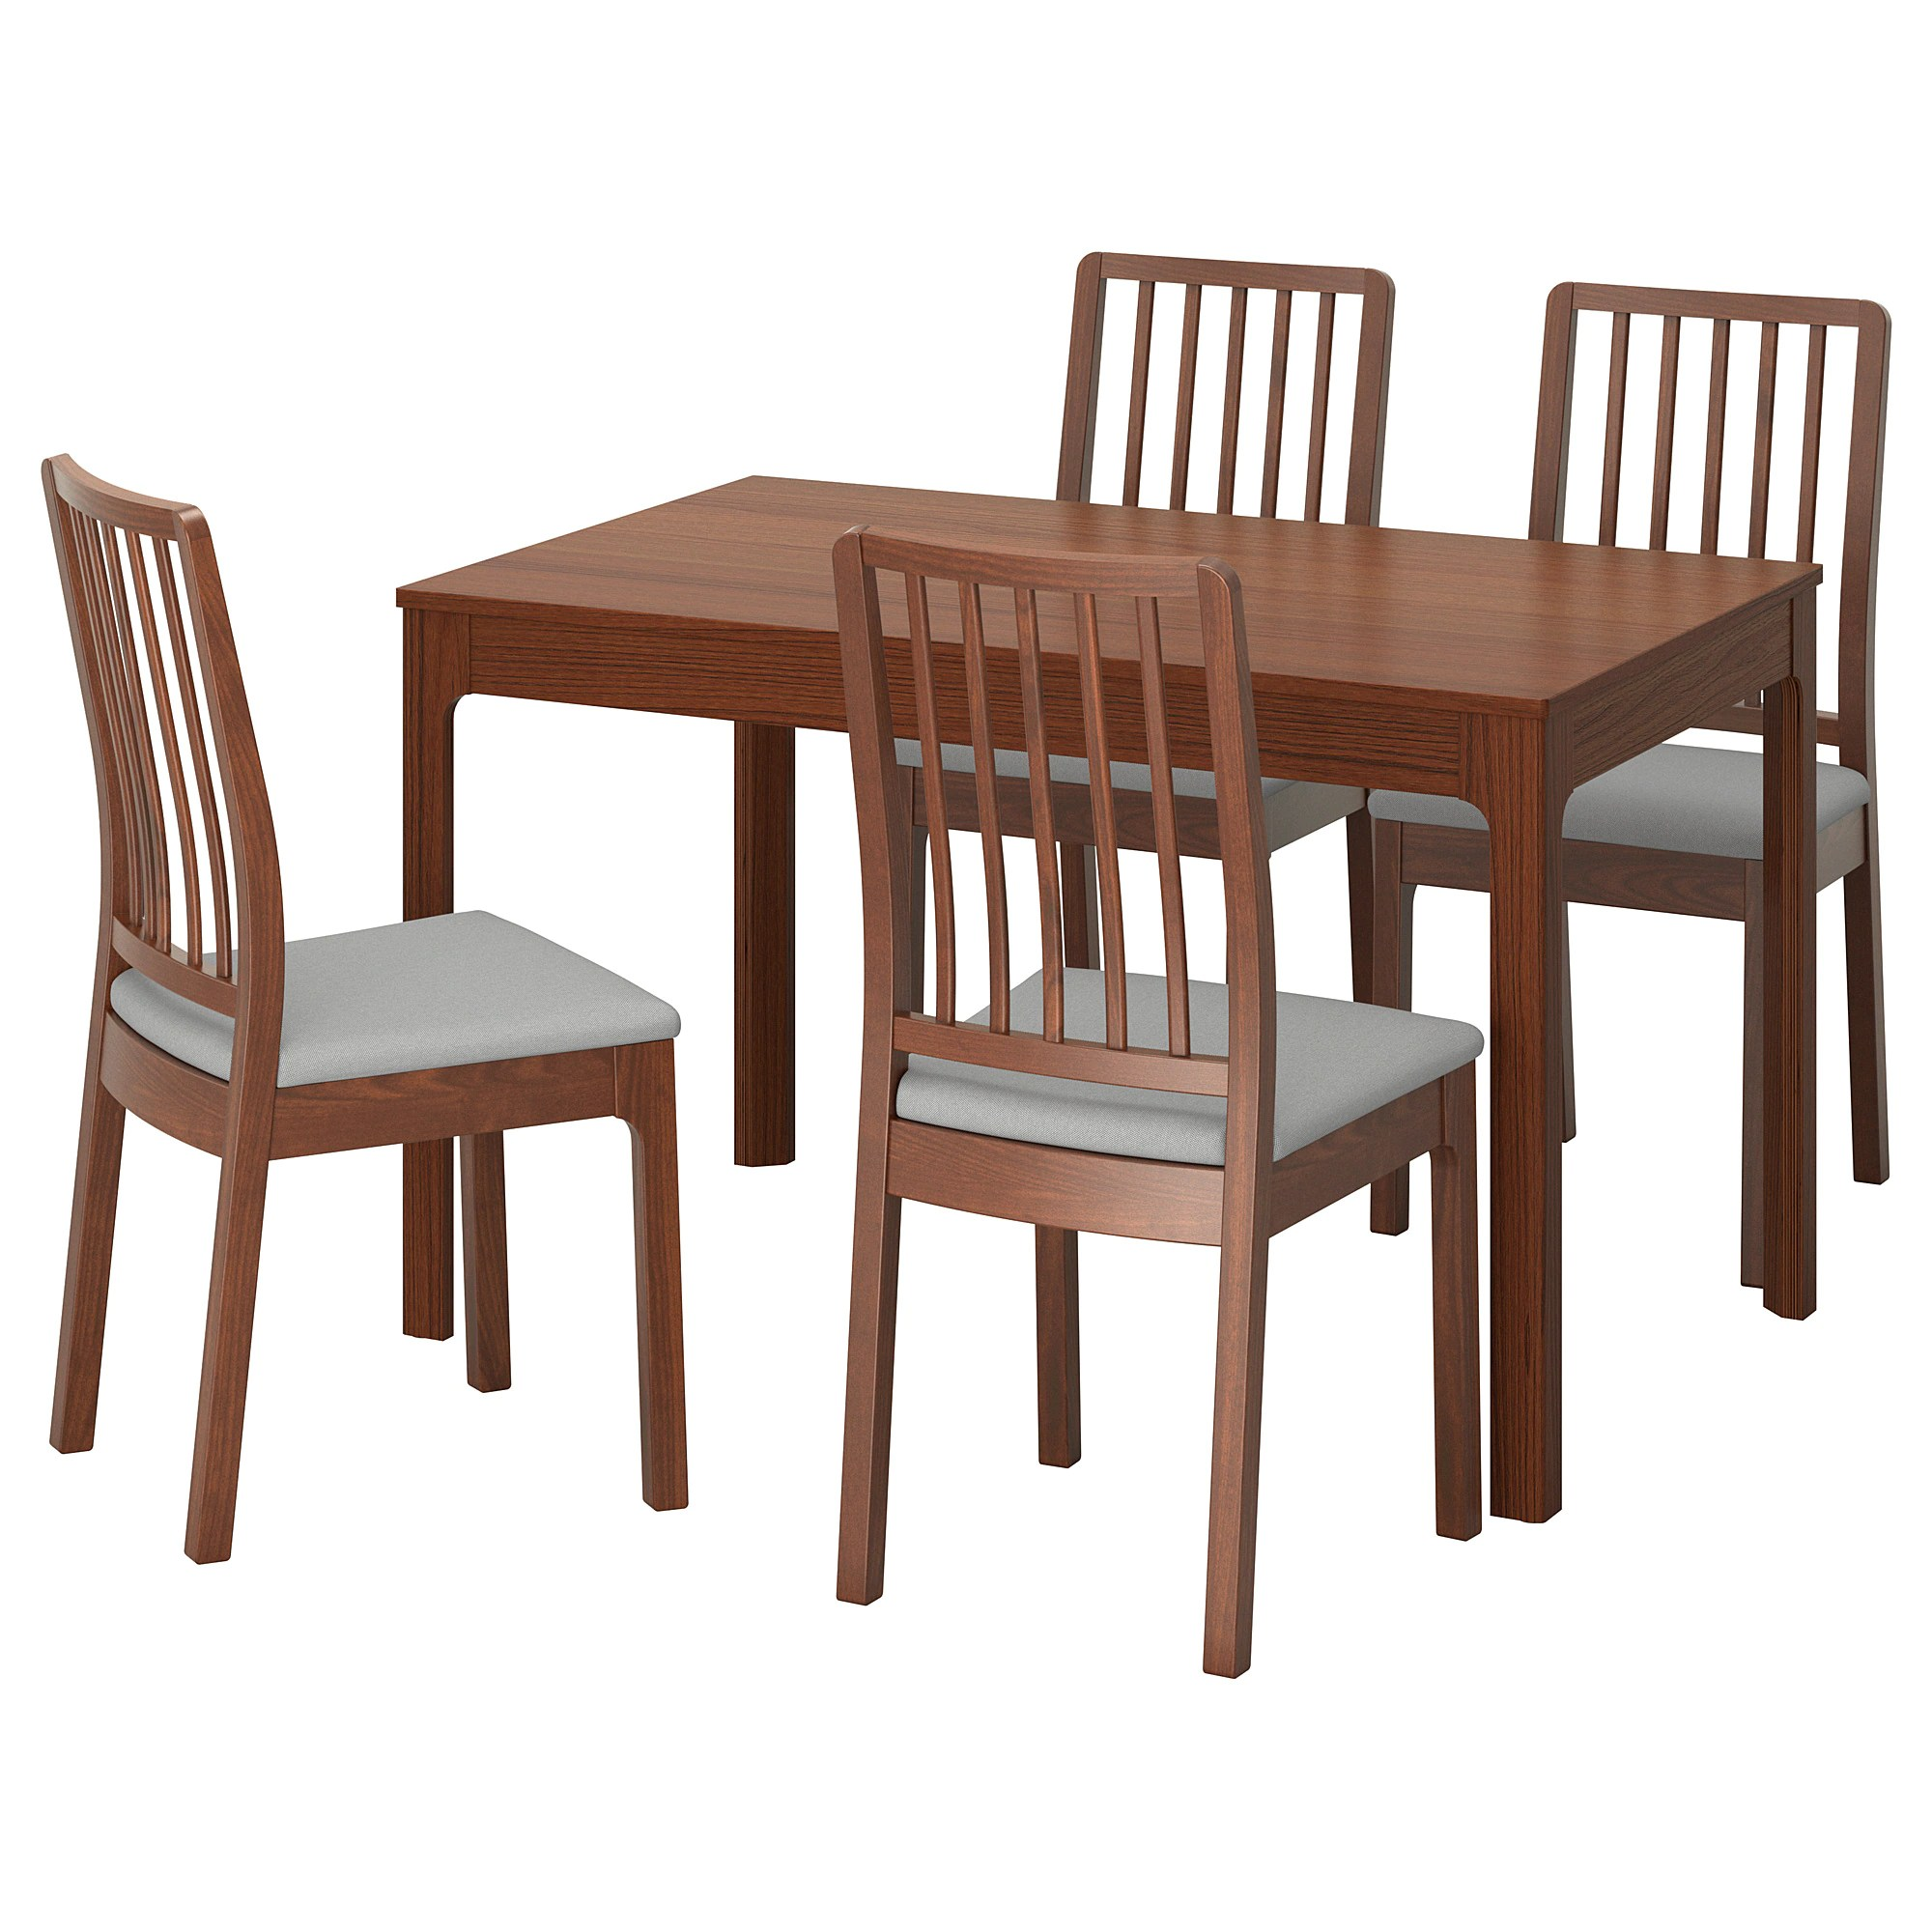 Table With Chairs Ekedalen Ekedalen Table And 4 Chairs Brown Orrsta Light Grey